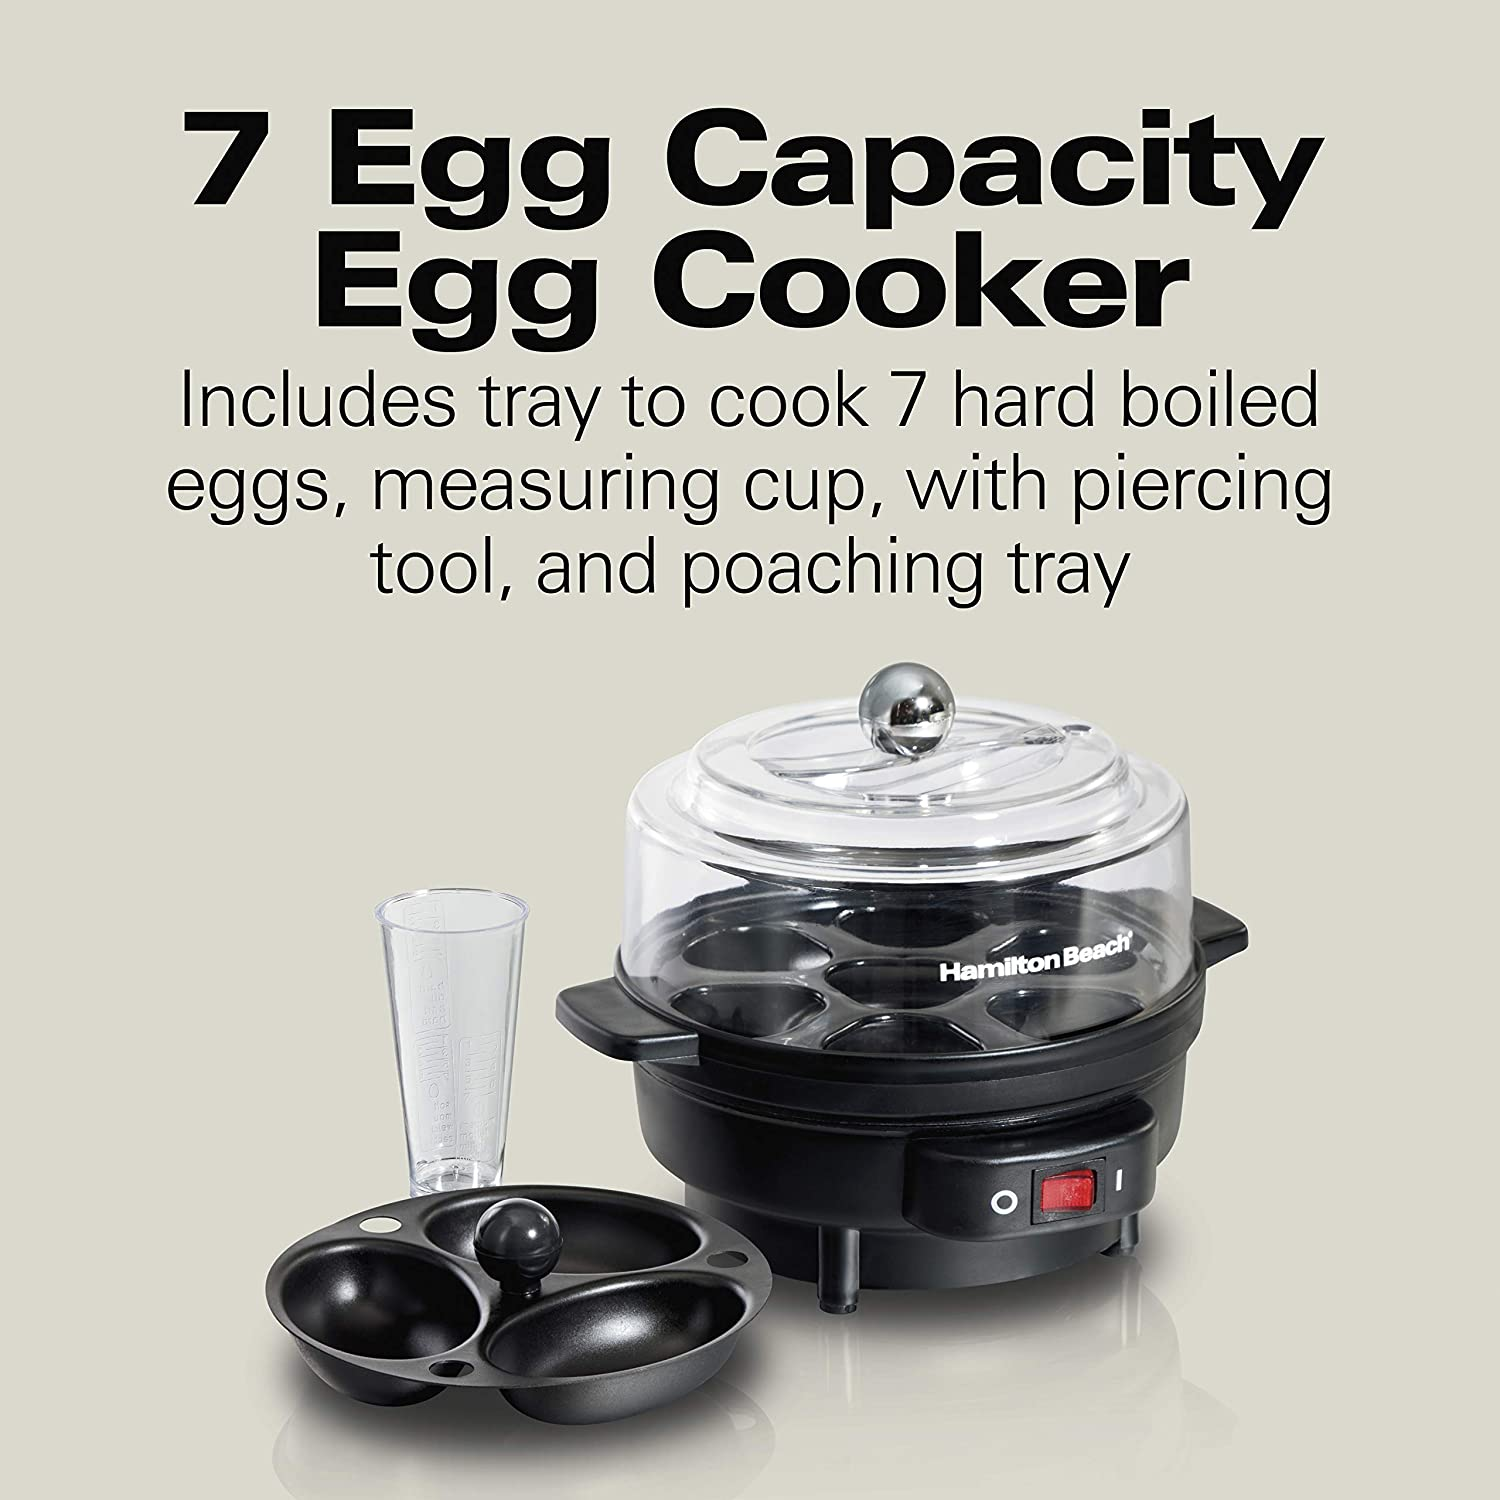 Egg Poachers Have An Inquiring Mind 4 Eggs Egg Boiler Cooker Poacher Steamer Electric Boiled 7 Eggs Omelette Maker